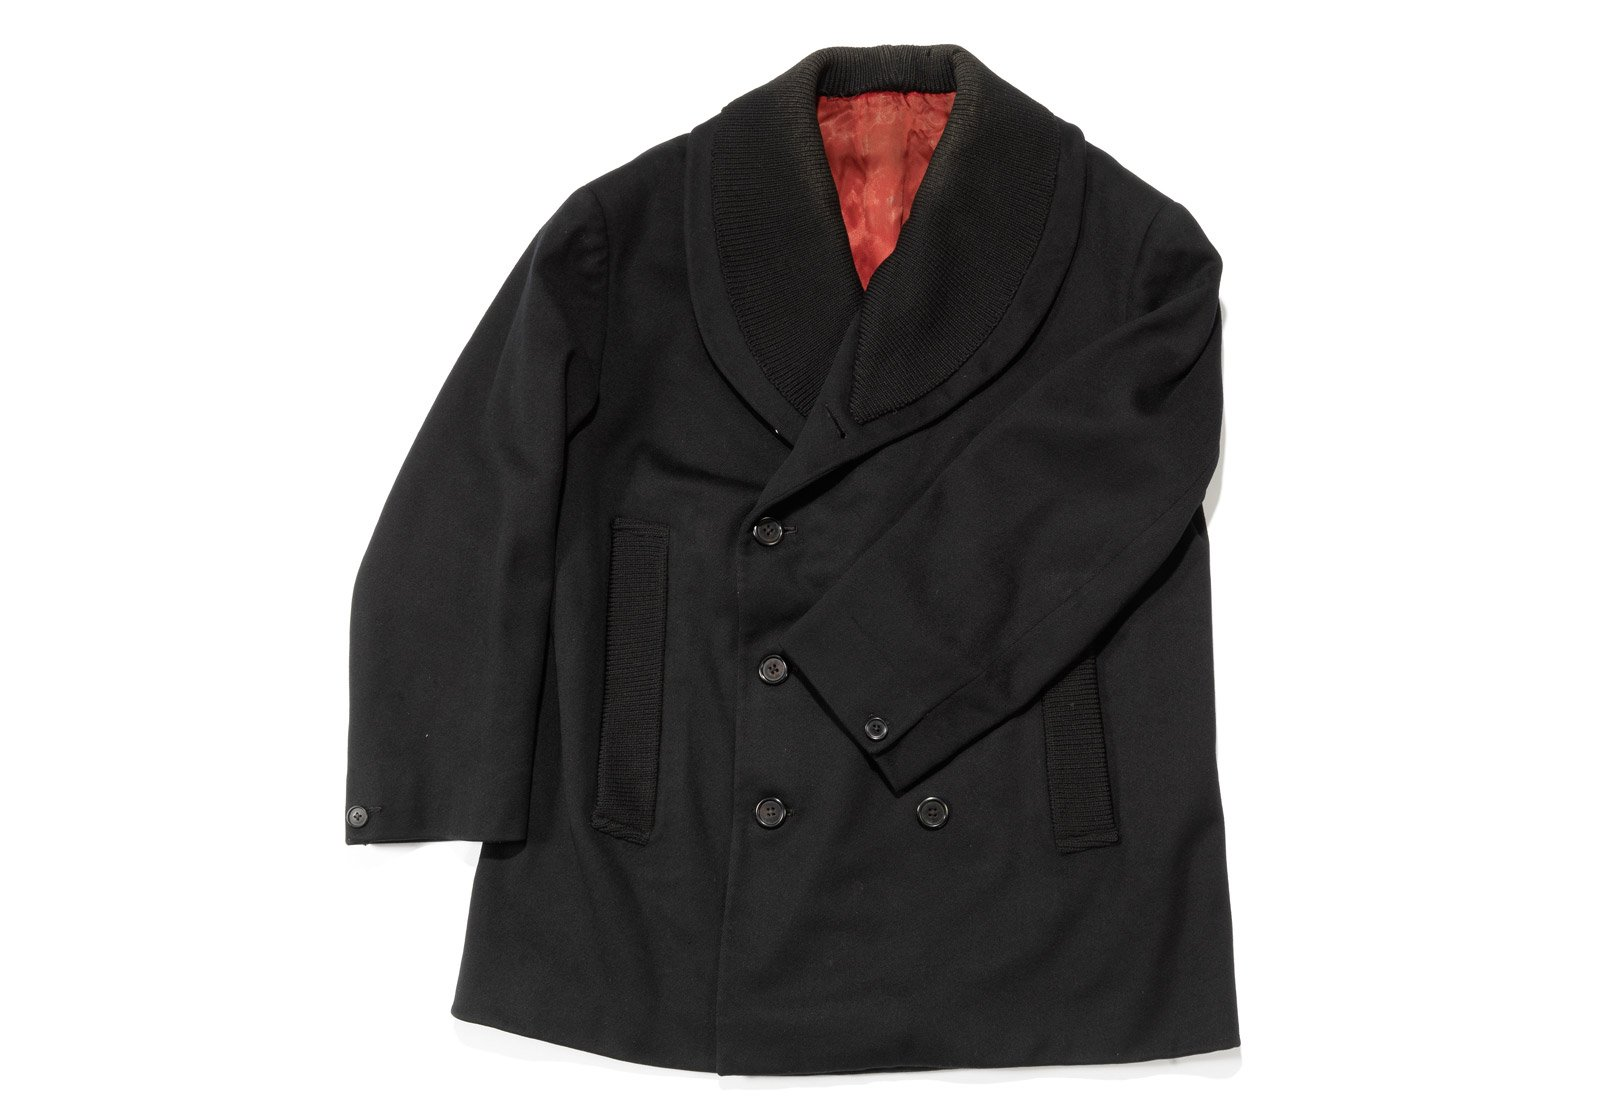 Ian Fleming's Pea Coat – The Suits of James Bond